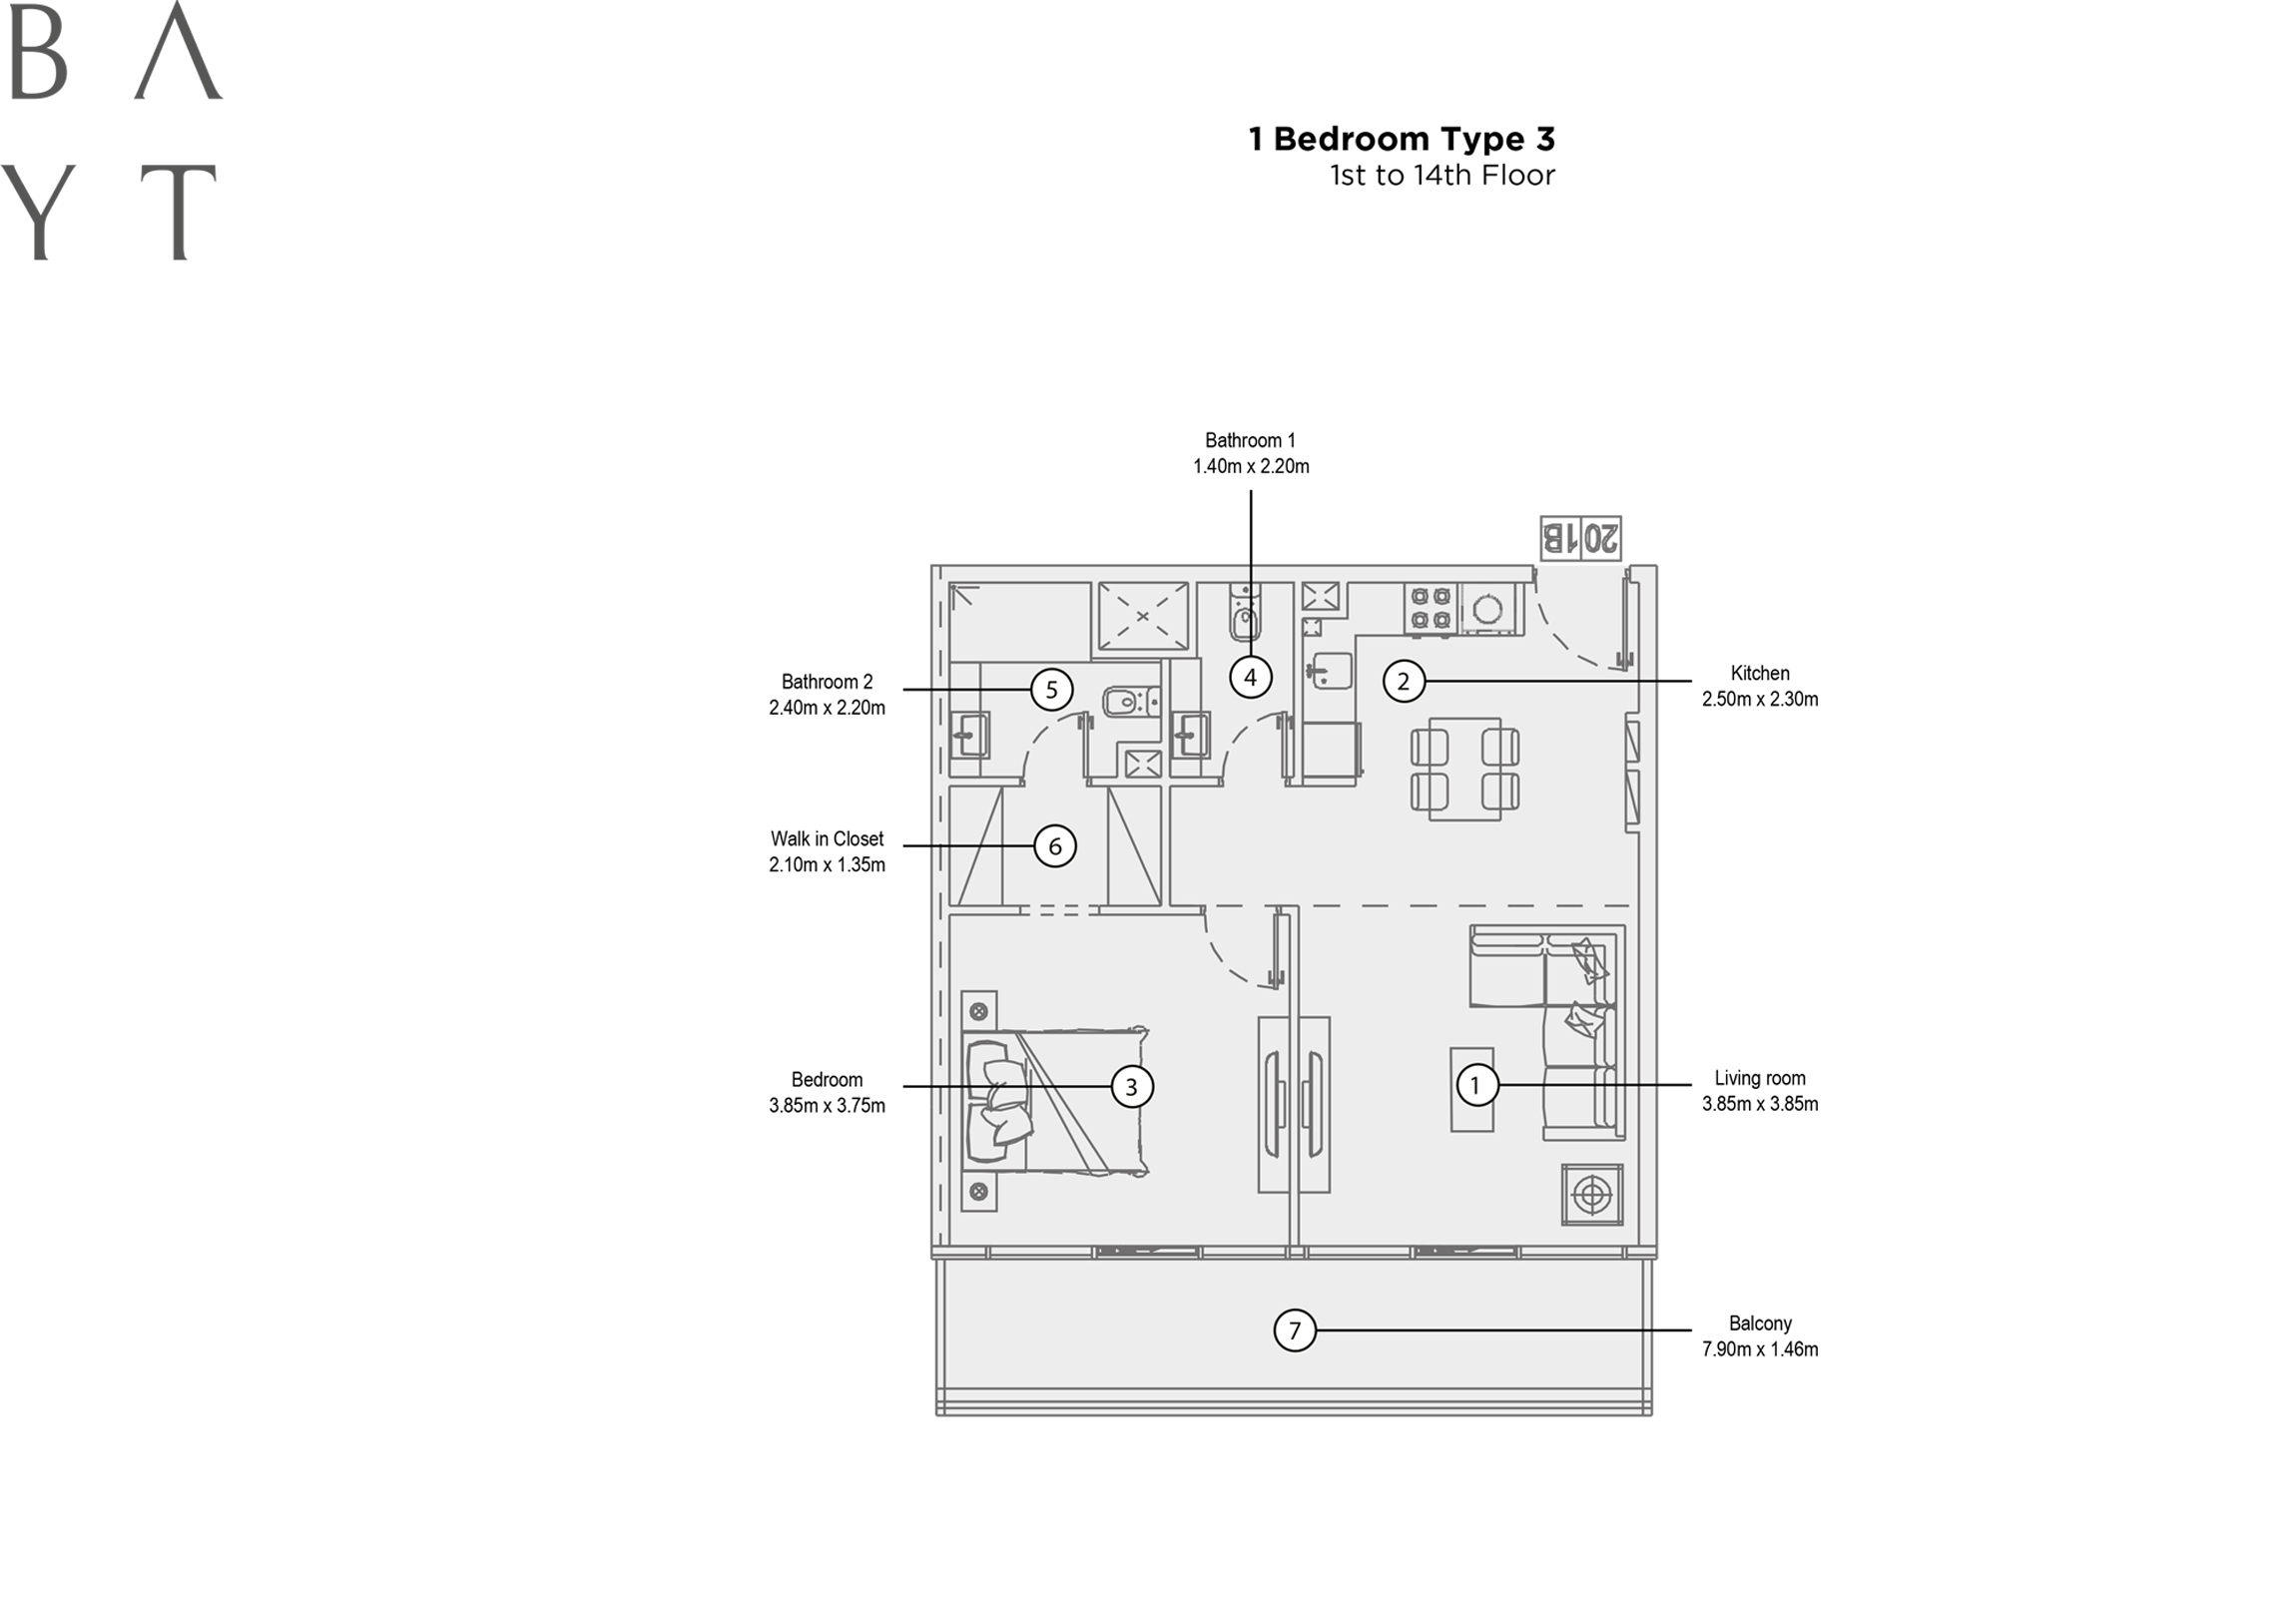 1 Bedroom Type 3, 1st to 14th Floor